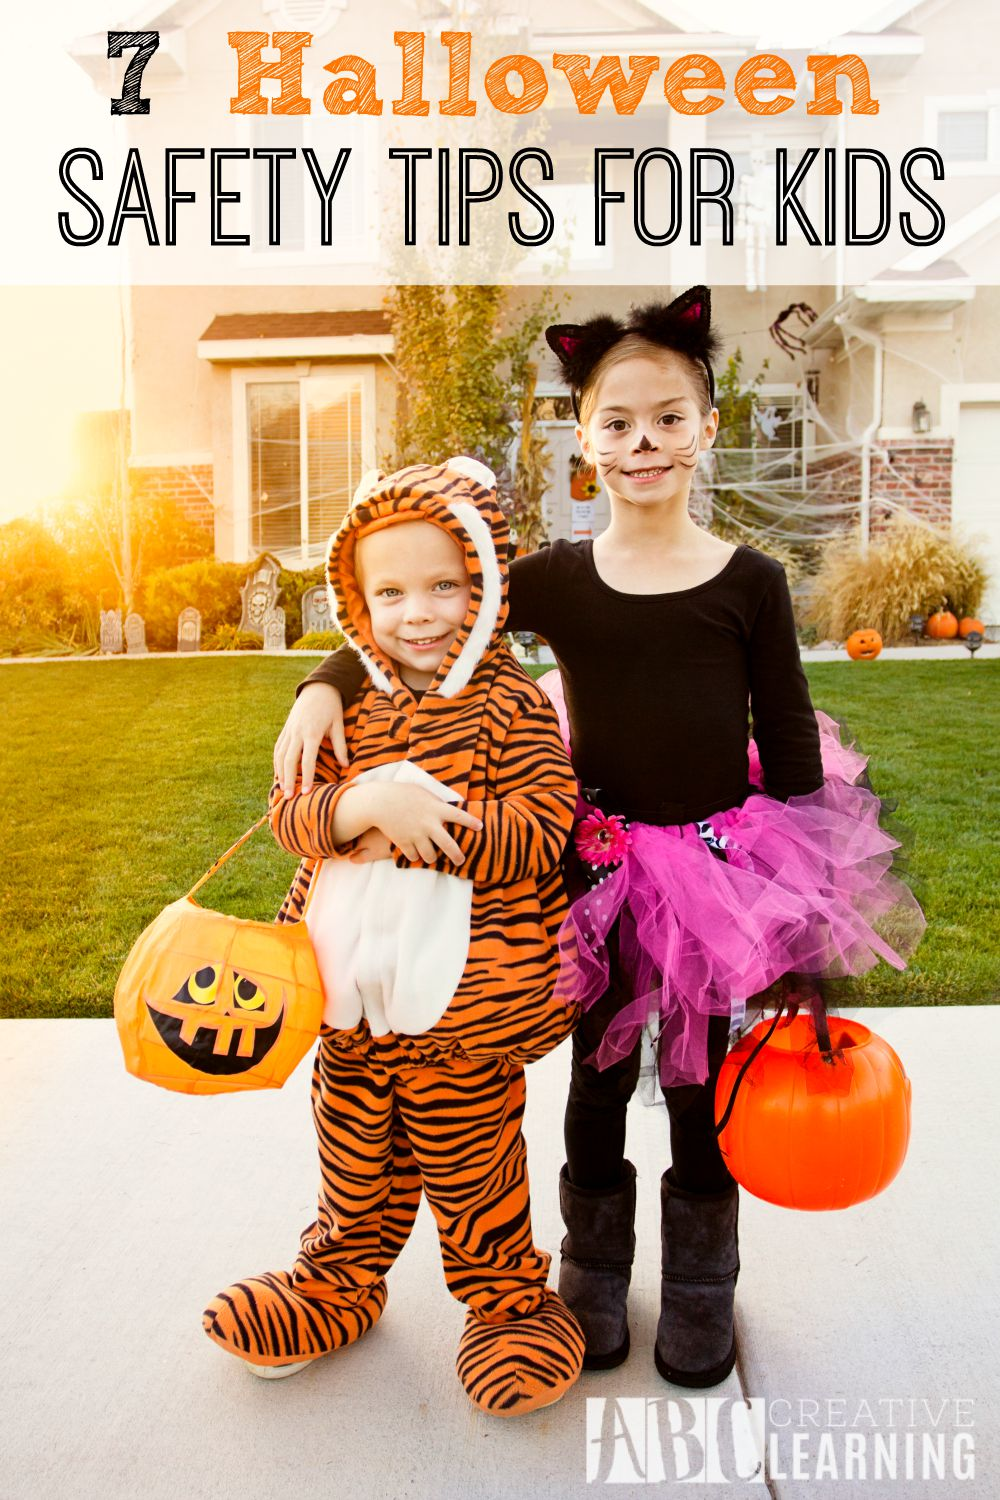 7 Halloween Safety Tips for Kids